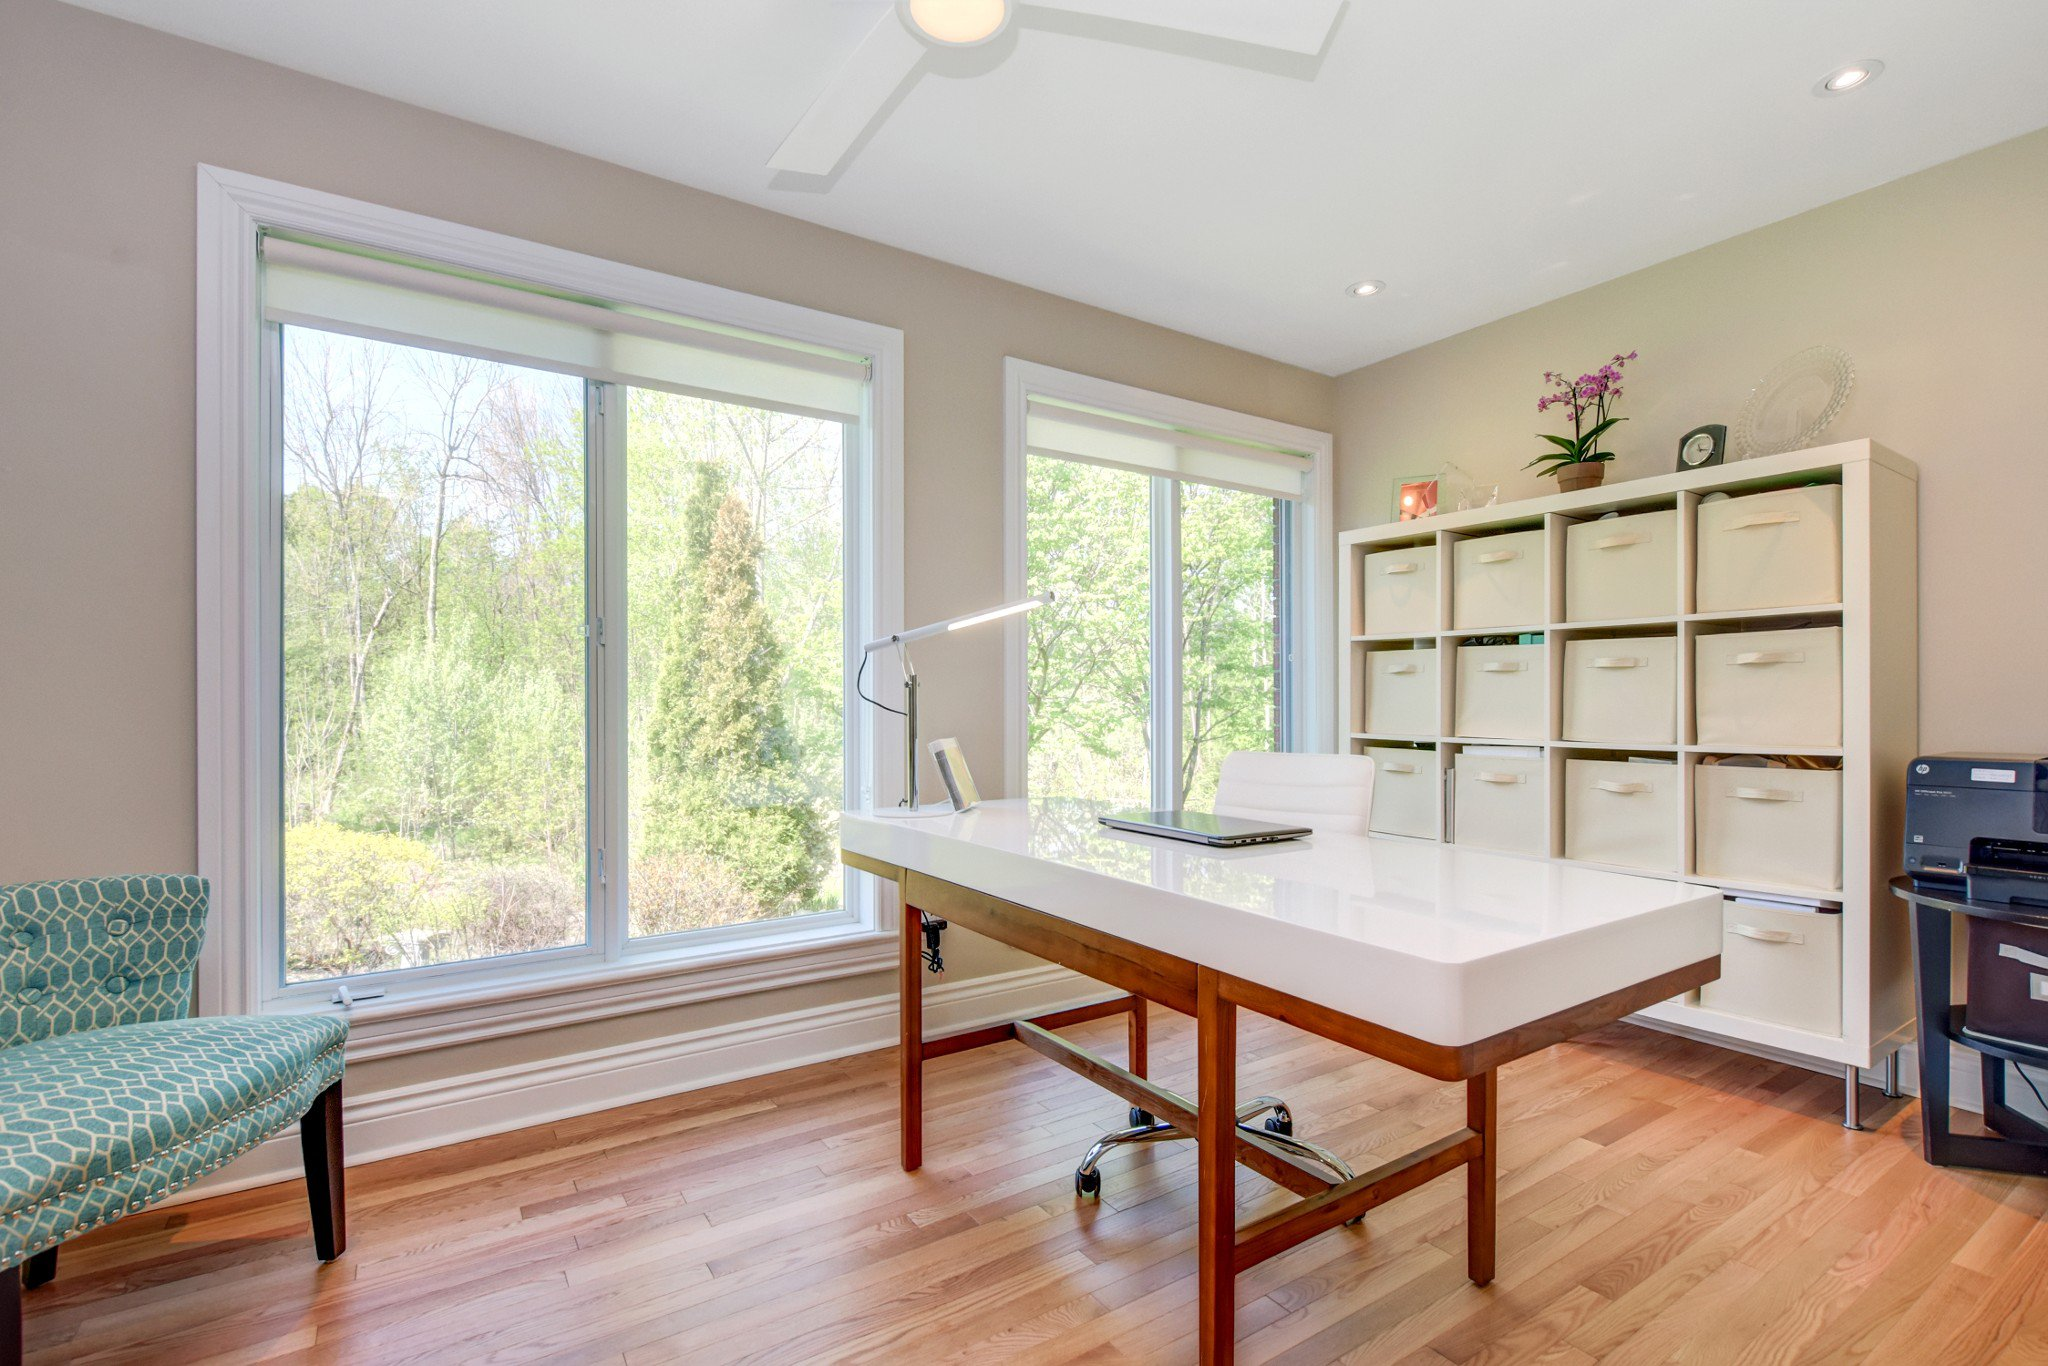 Photo 34: Photos: 1490 REINDEER WAY.: Greely House for sale (Ottawa)  : MLS®# 1109530